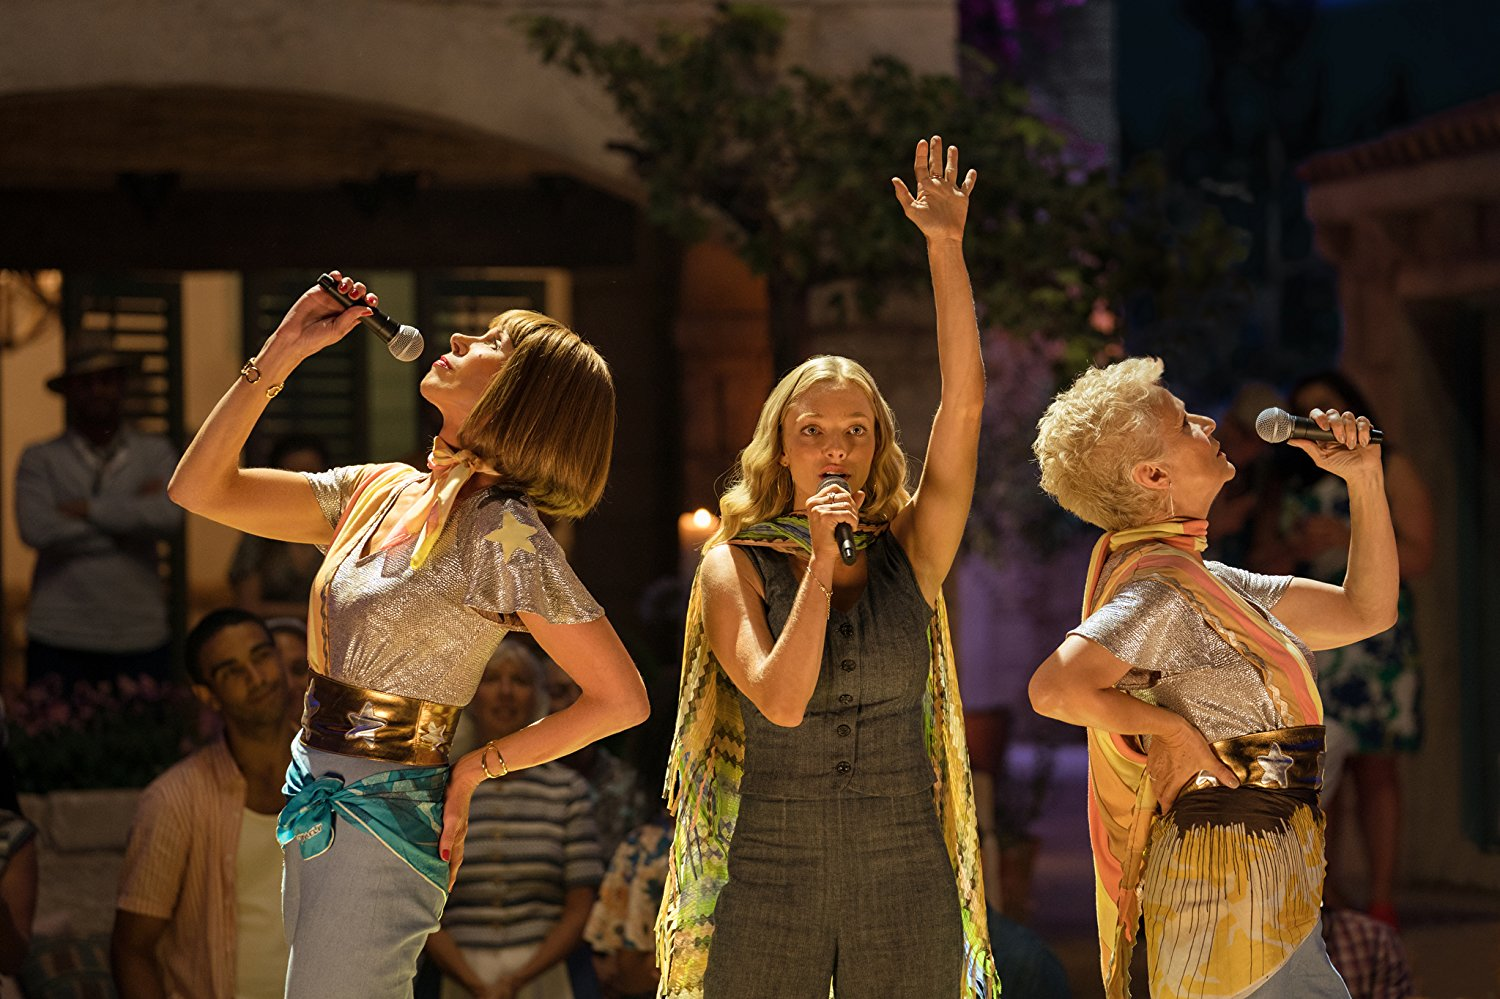 Mamma Mia! Here We Go Again, movie reviews, Lucas Mirabella